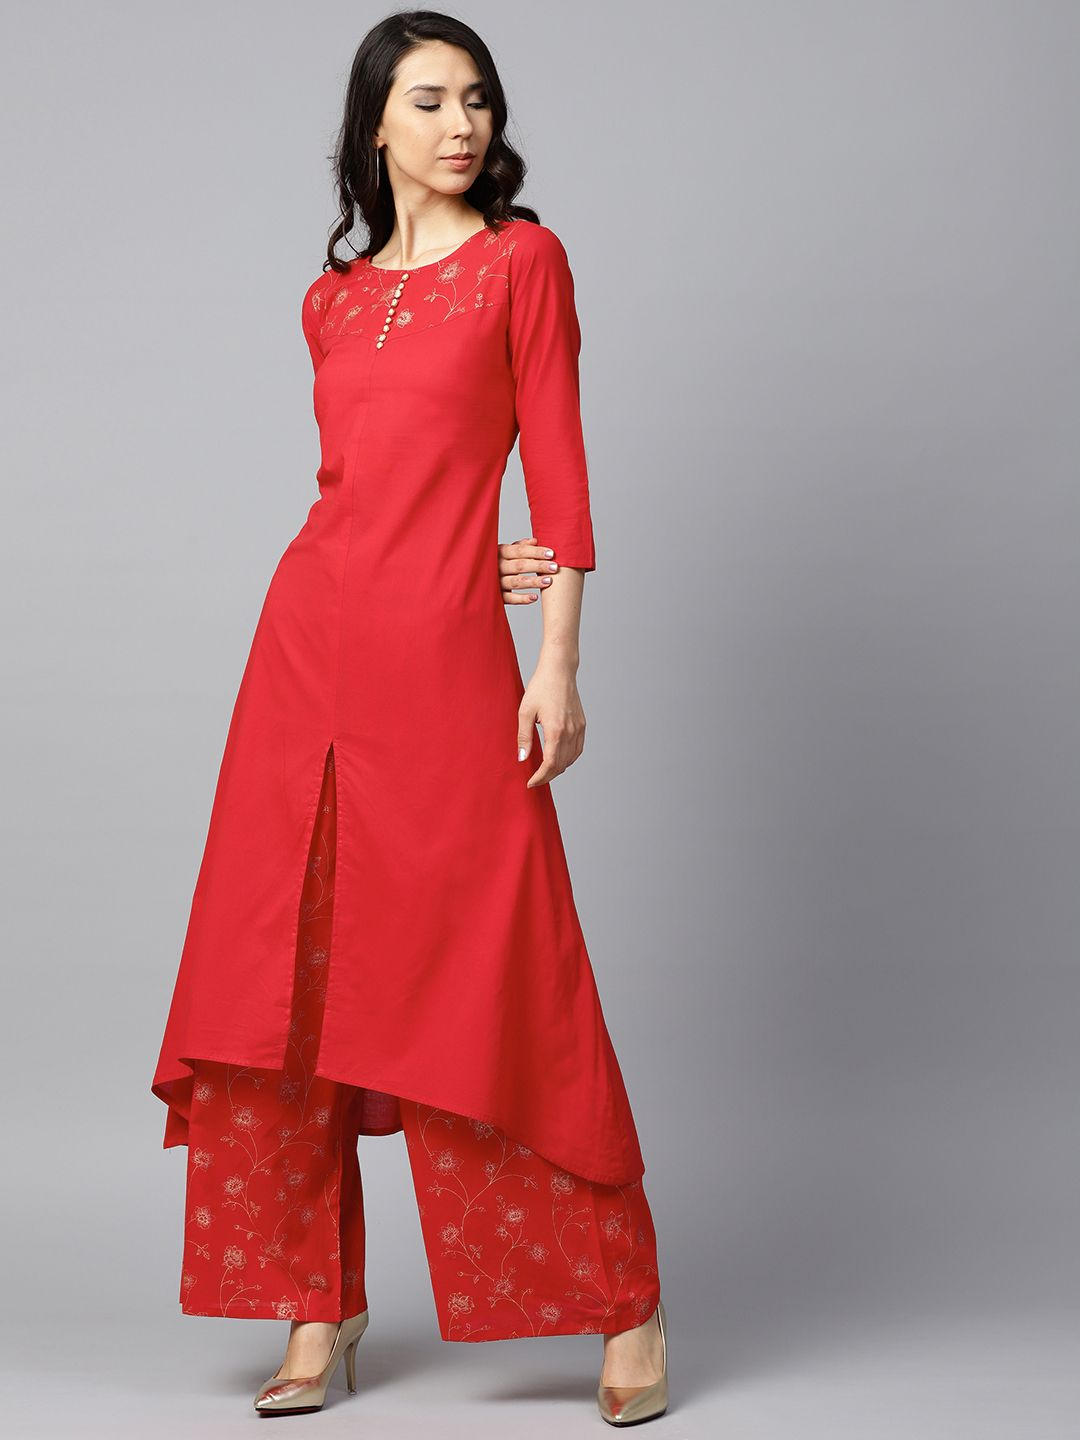 2ff138e0c4 Buy Nayo Women Red & Golden Solid Kurta With Palazzos - Kurta Sets for  Women 6618449 | Myntra